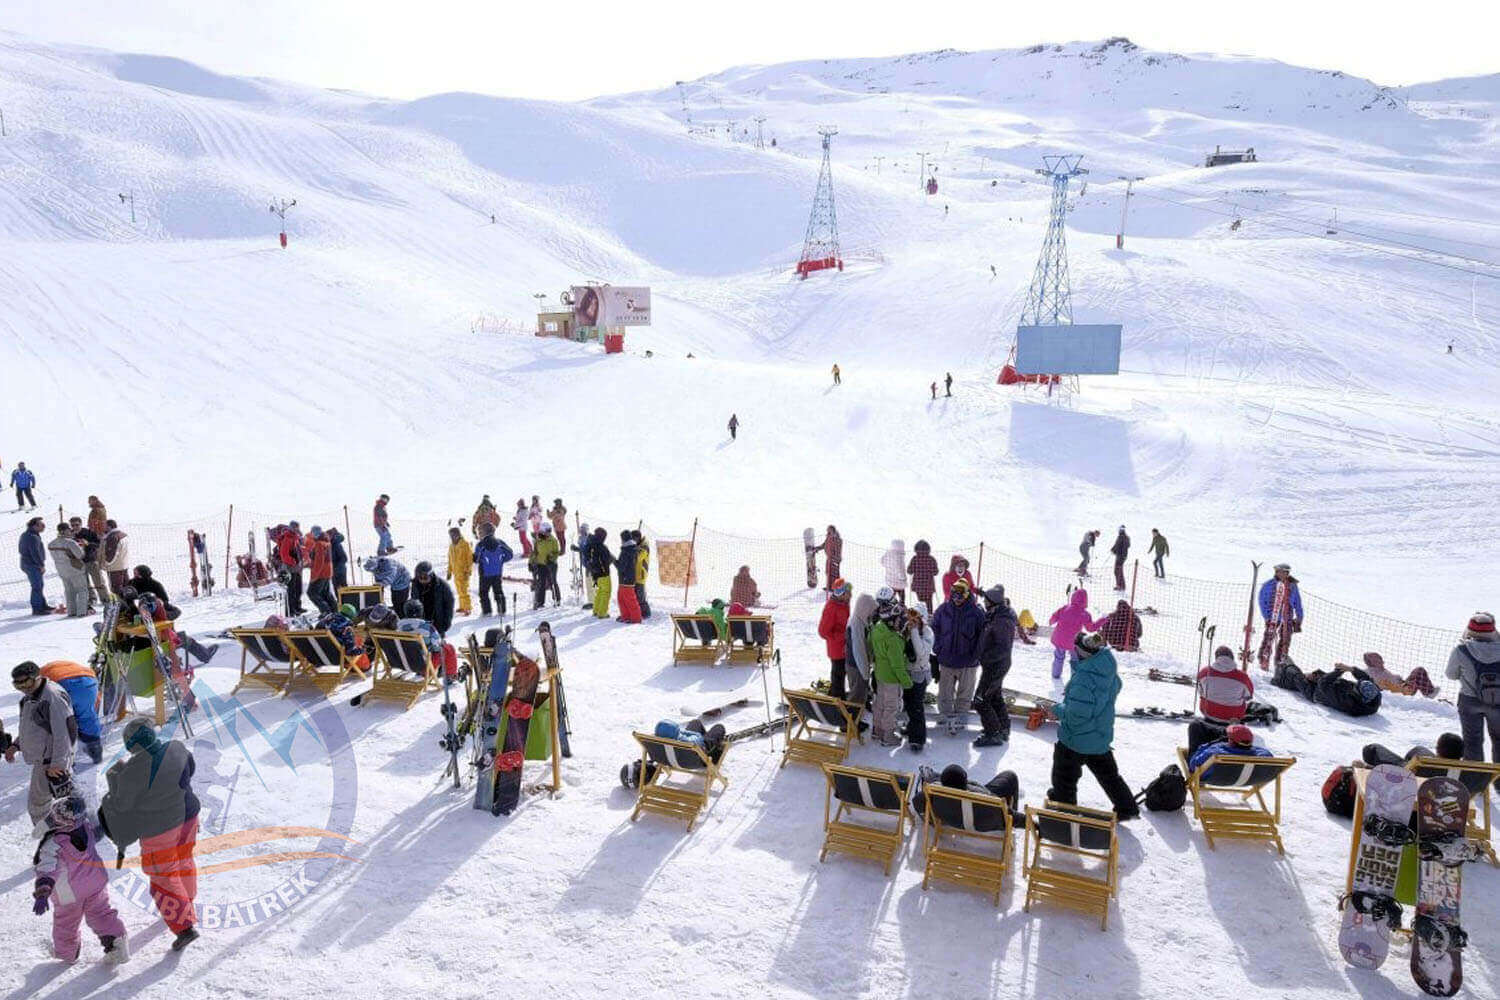 Alibabatrek Iran tours Iran tour packages Skiing in iran ski resort Iran Cultural tour Dizin Ski Resort2